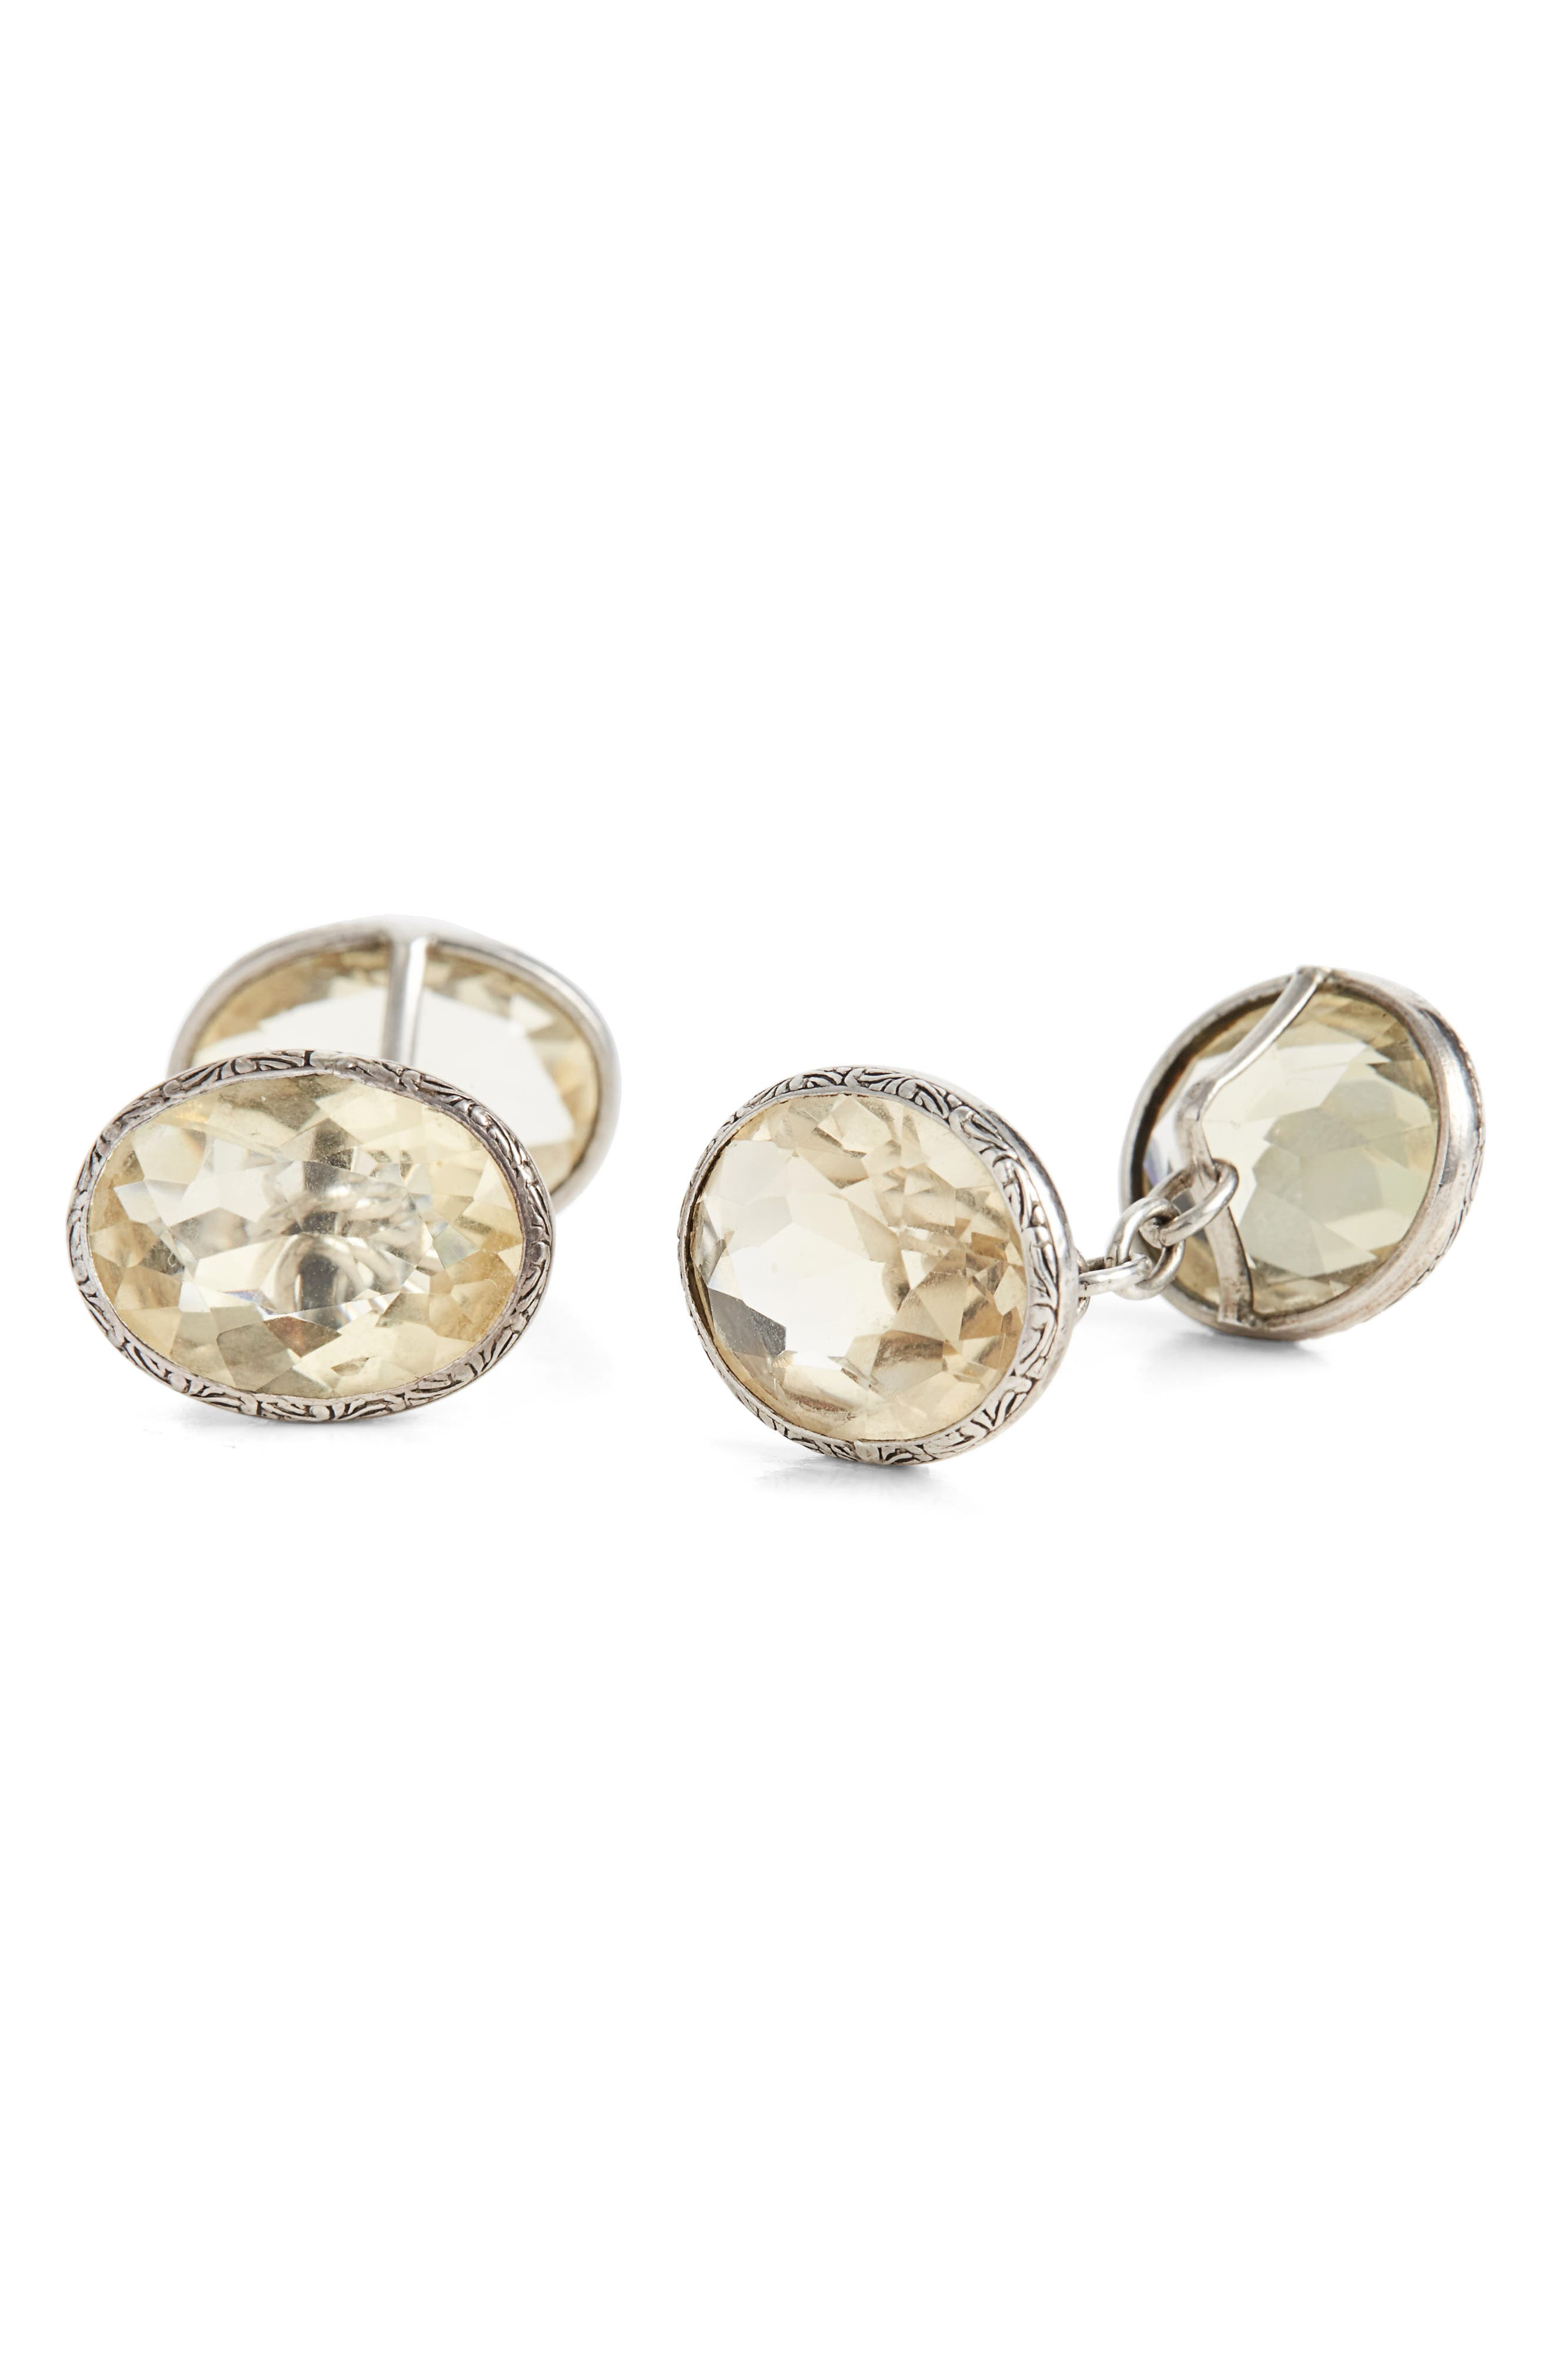 Foundwell One of a Kind Vintage Citrine Silver Oval Faceted Cuff Links